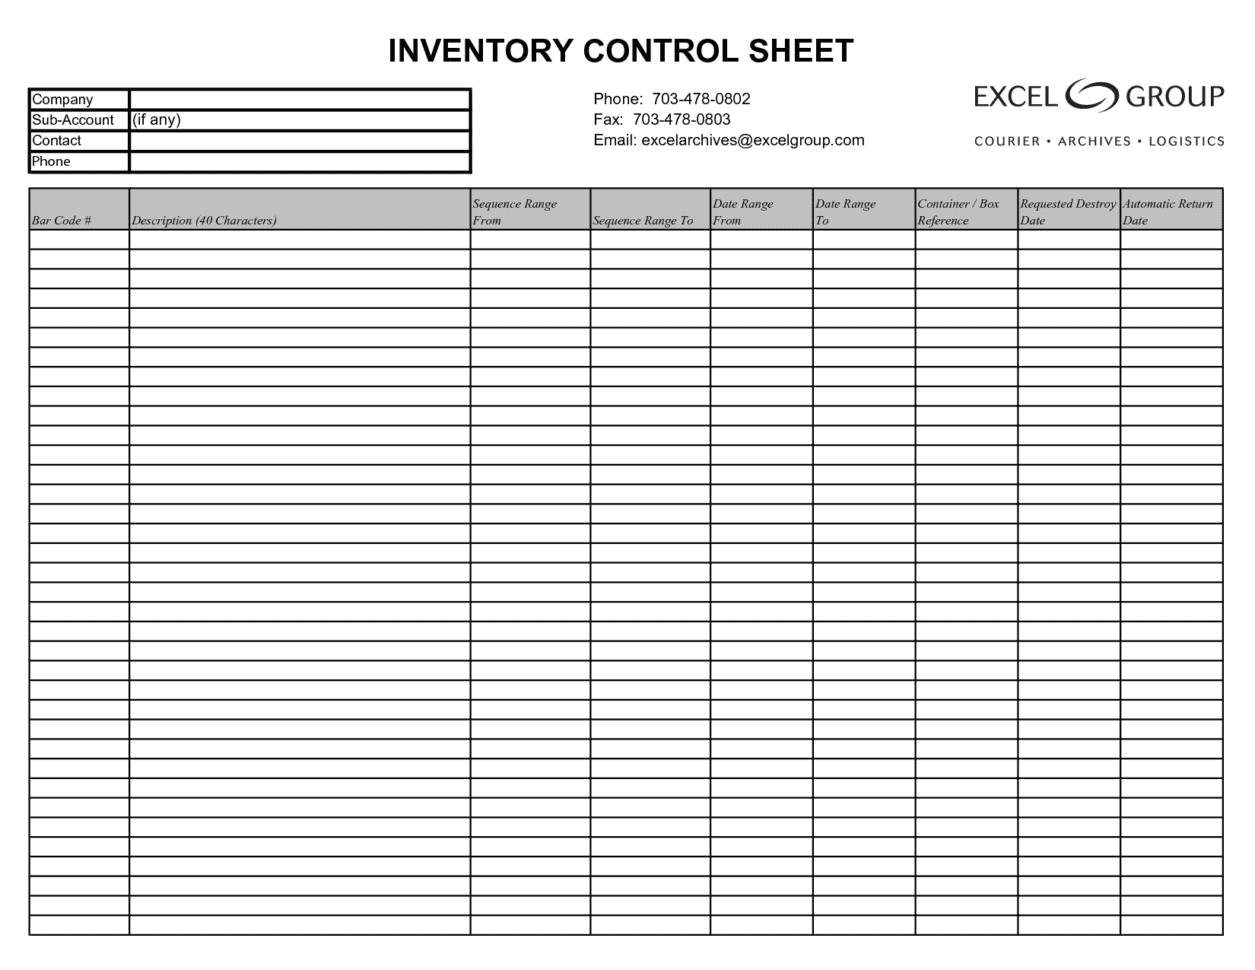 Excel Inventory Tracking Template Small Business Inventory Spreadsheet Template Retail Inventory Spreadsheet Template Simple Inventory Tracking Spreadsheet Inventory Management Sheet In Excel Spreadsheet For Inventory Control Free Printable Inventory List  Free Inventory Management Template Excel Inventory Tracking Spreadsheet Template Spreadsheet Templates for Busines